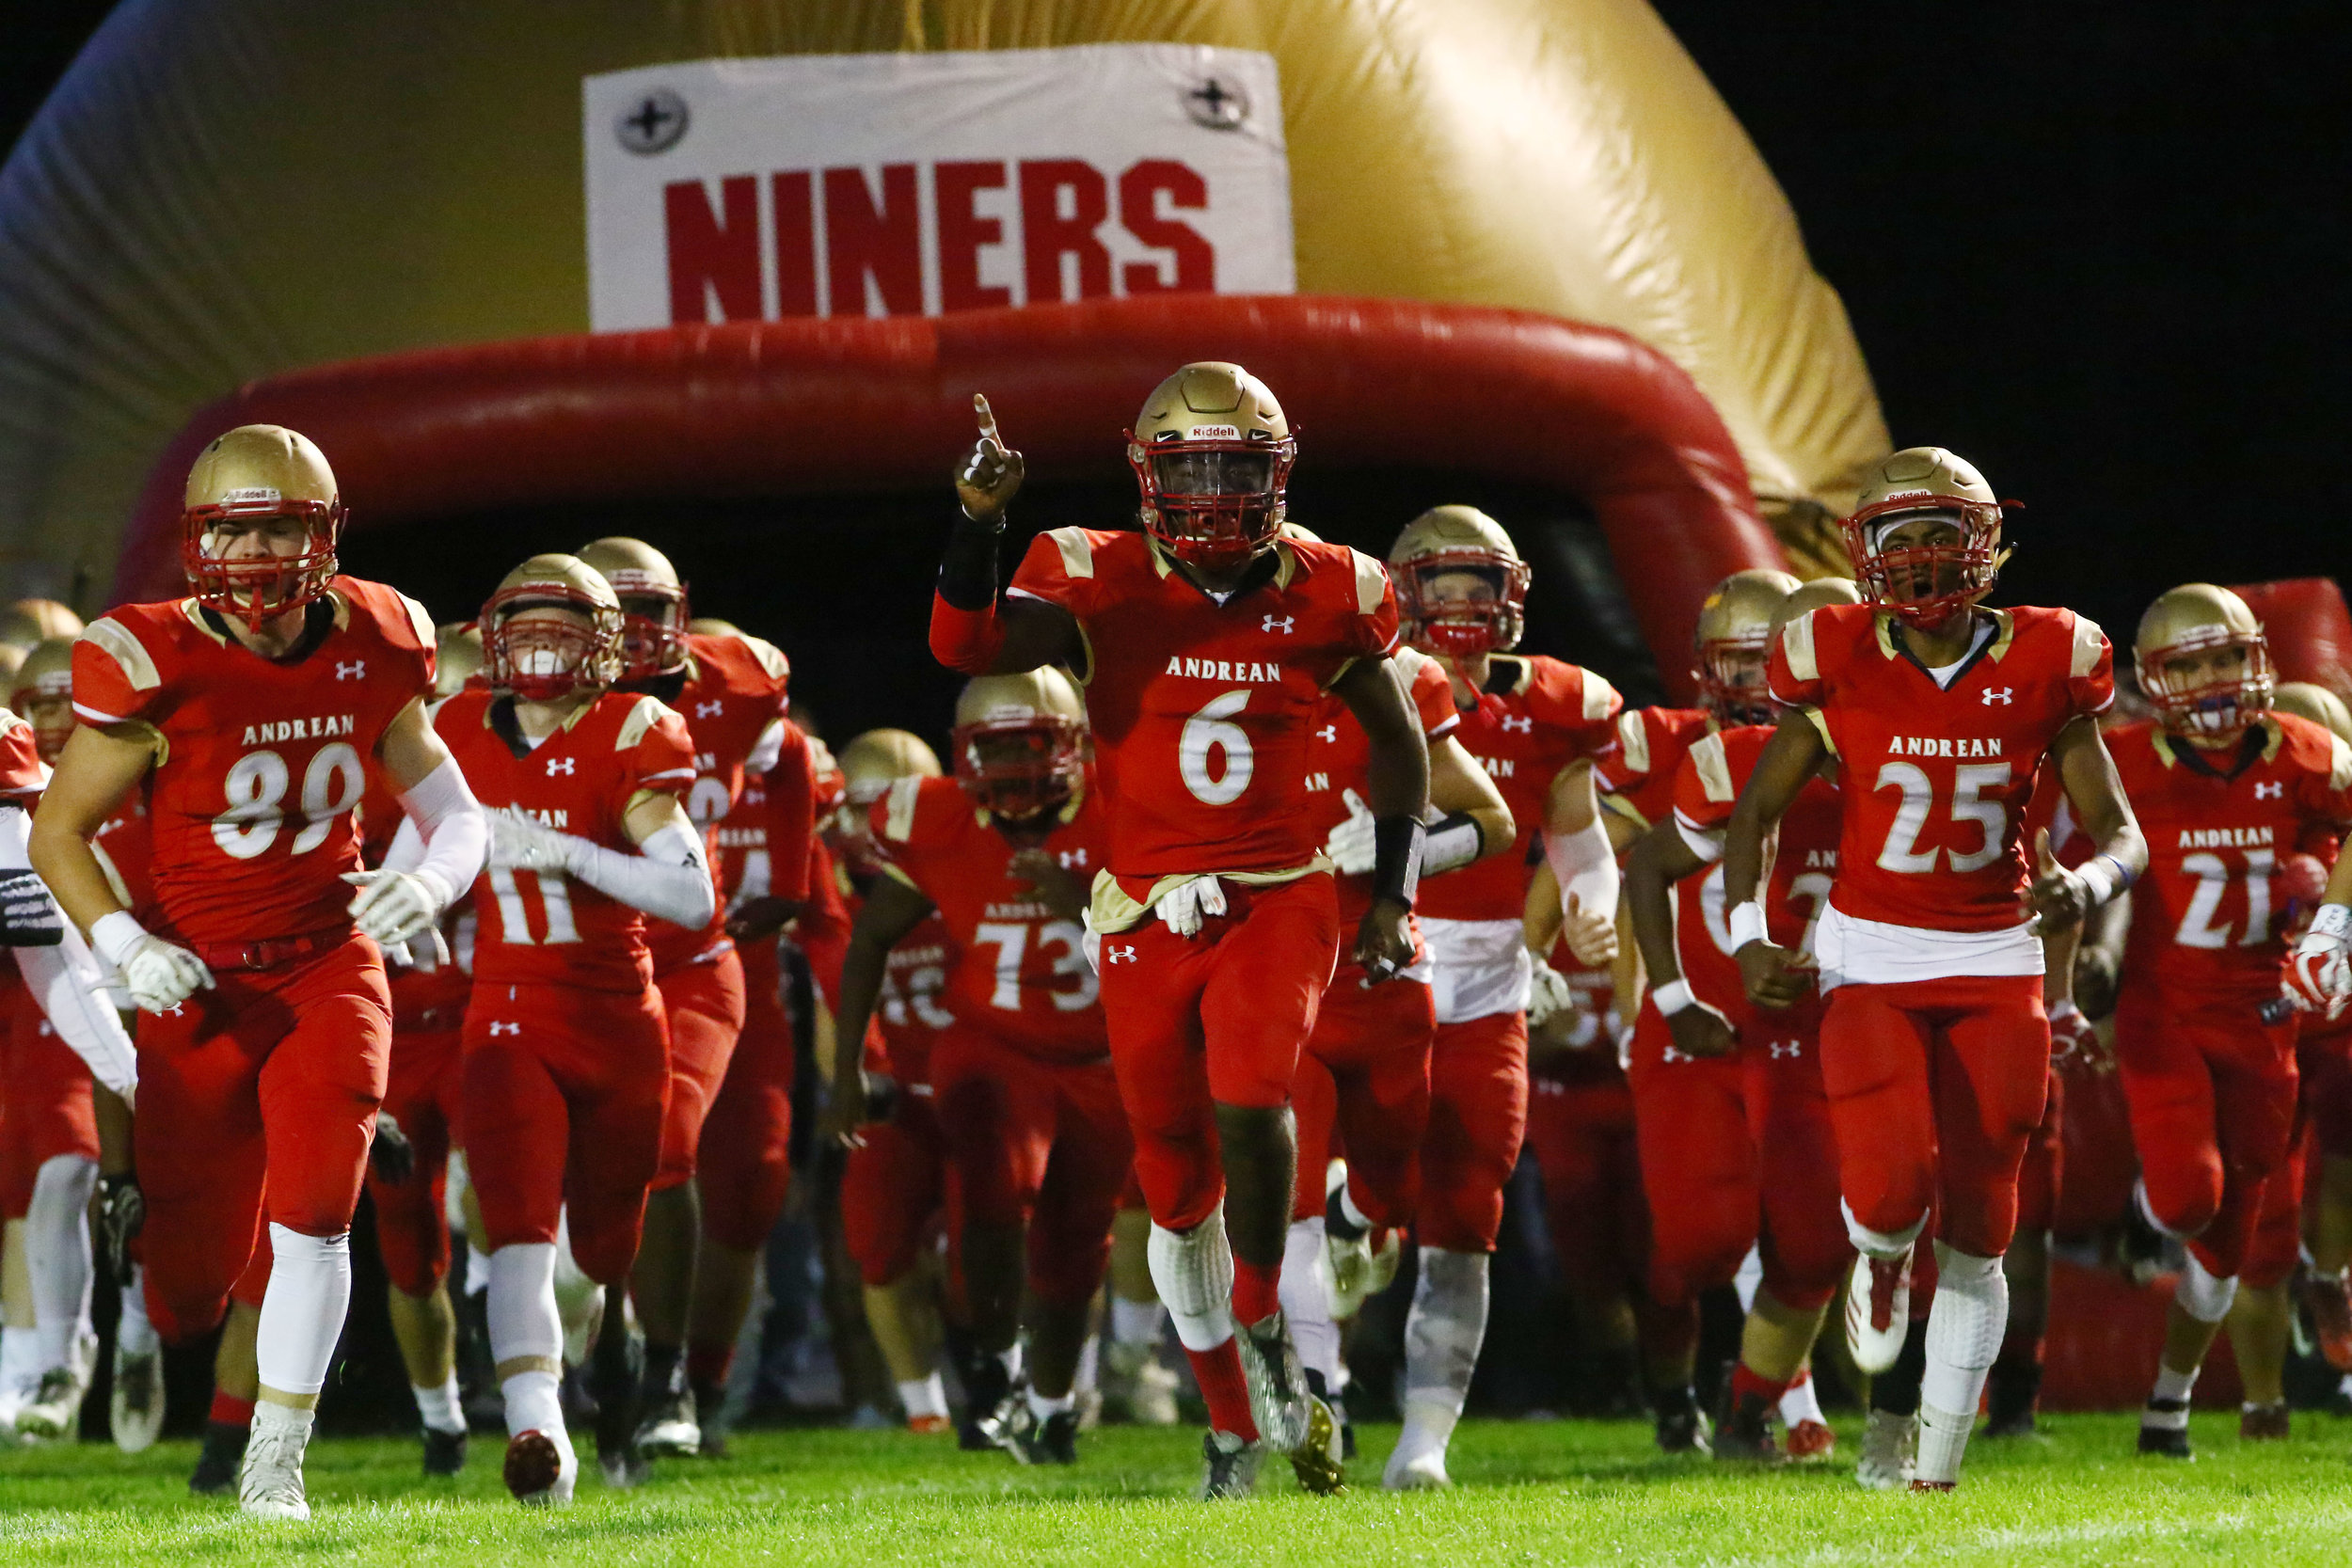 The Andrean 59ers run onto the field before a game against Kankakee Valley in Merrillville.